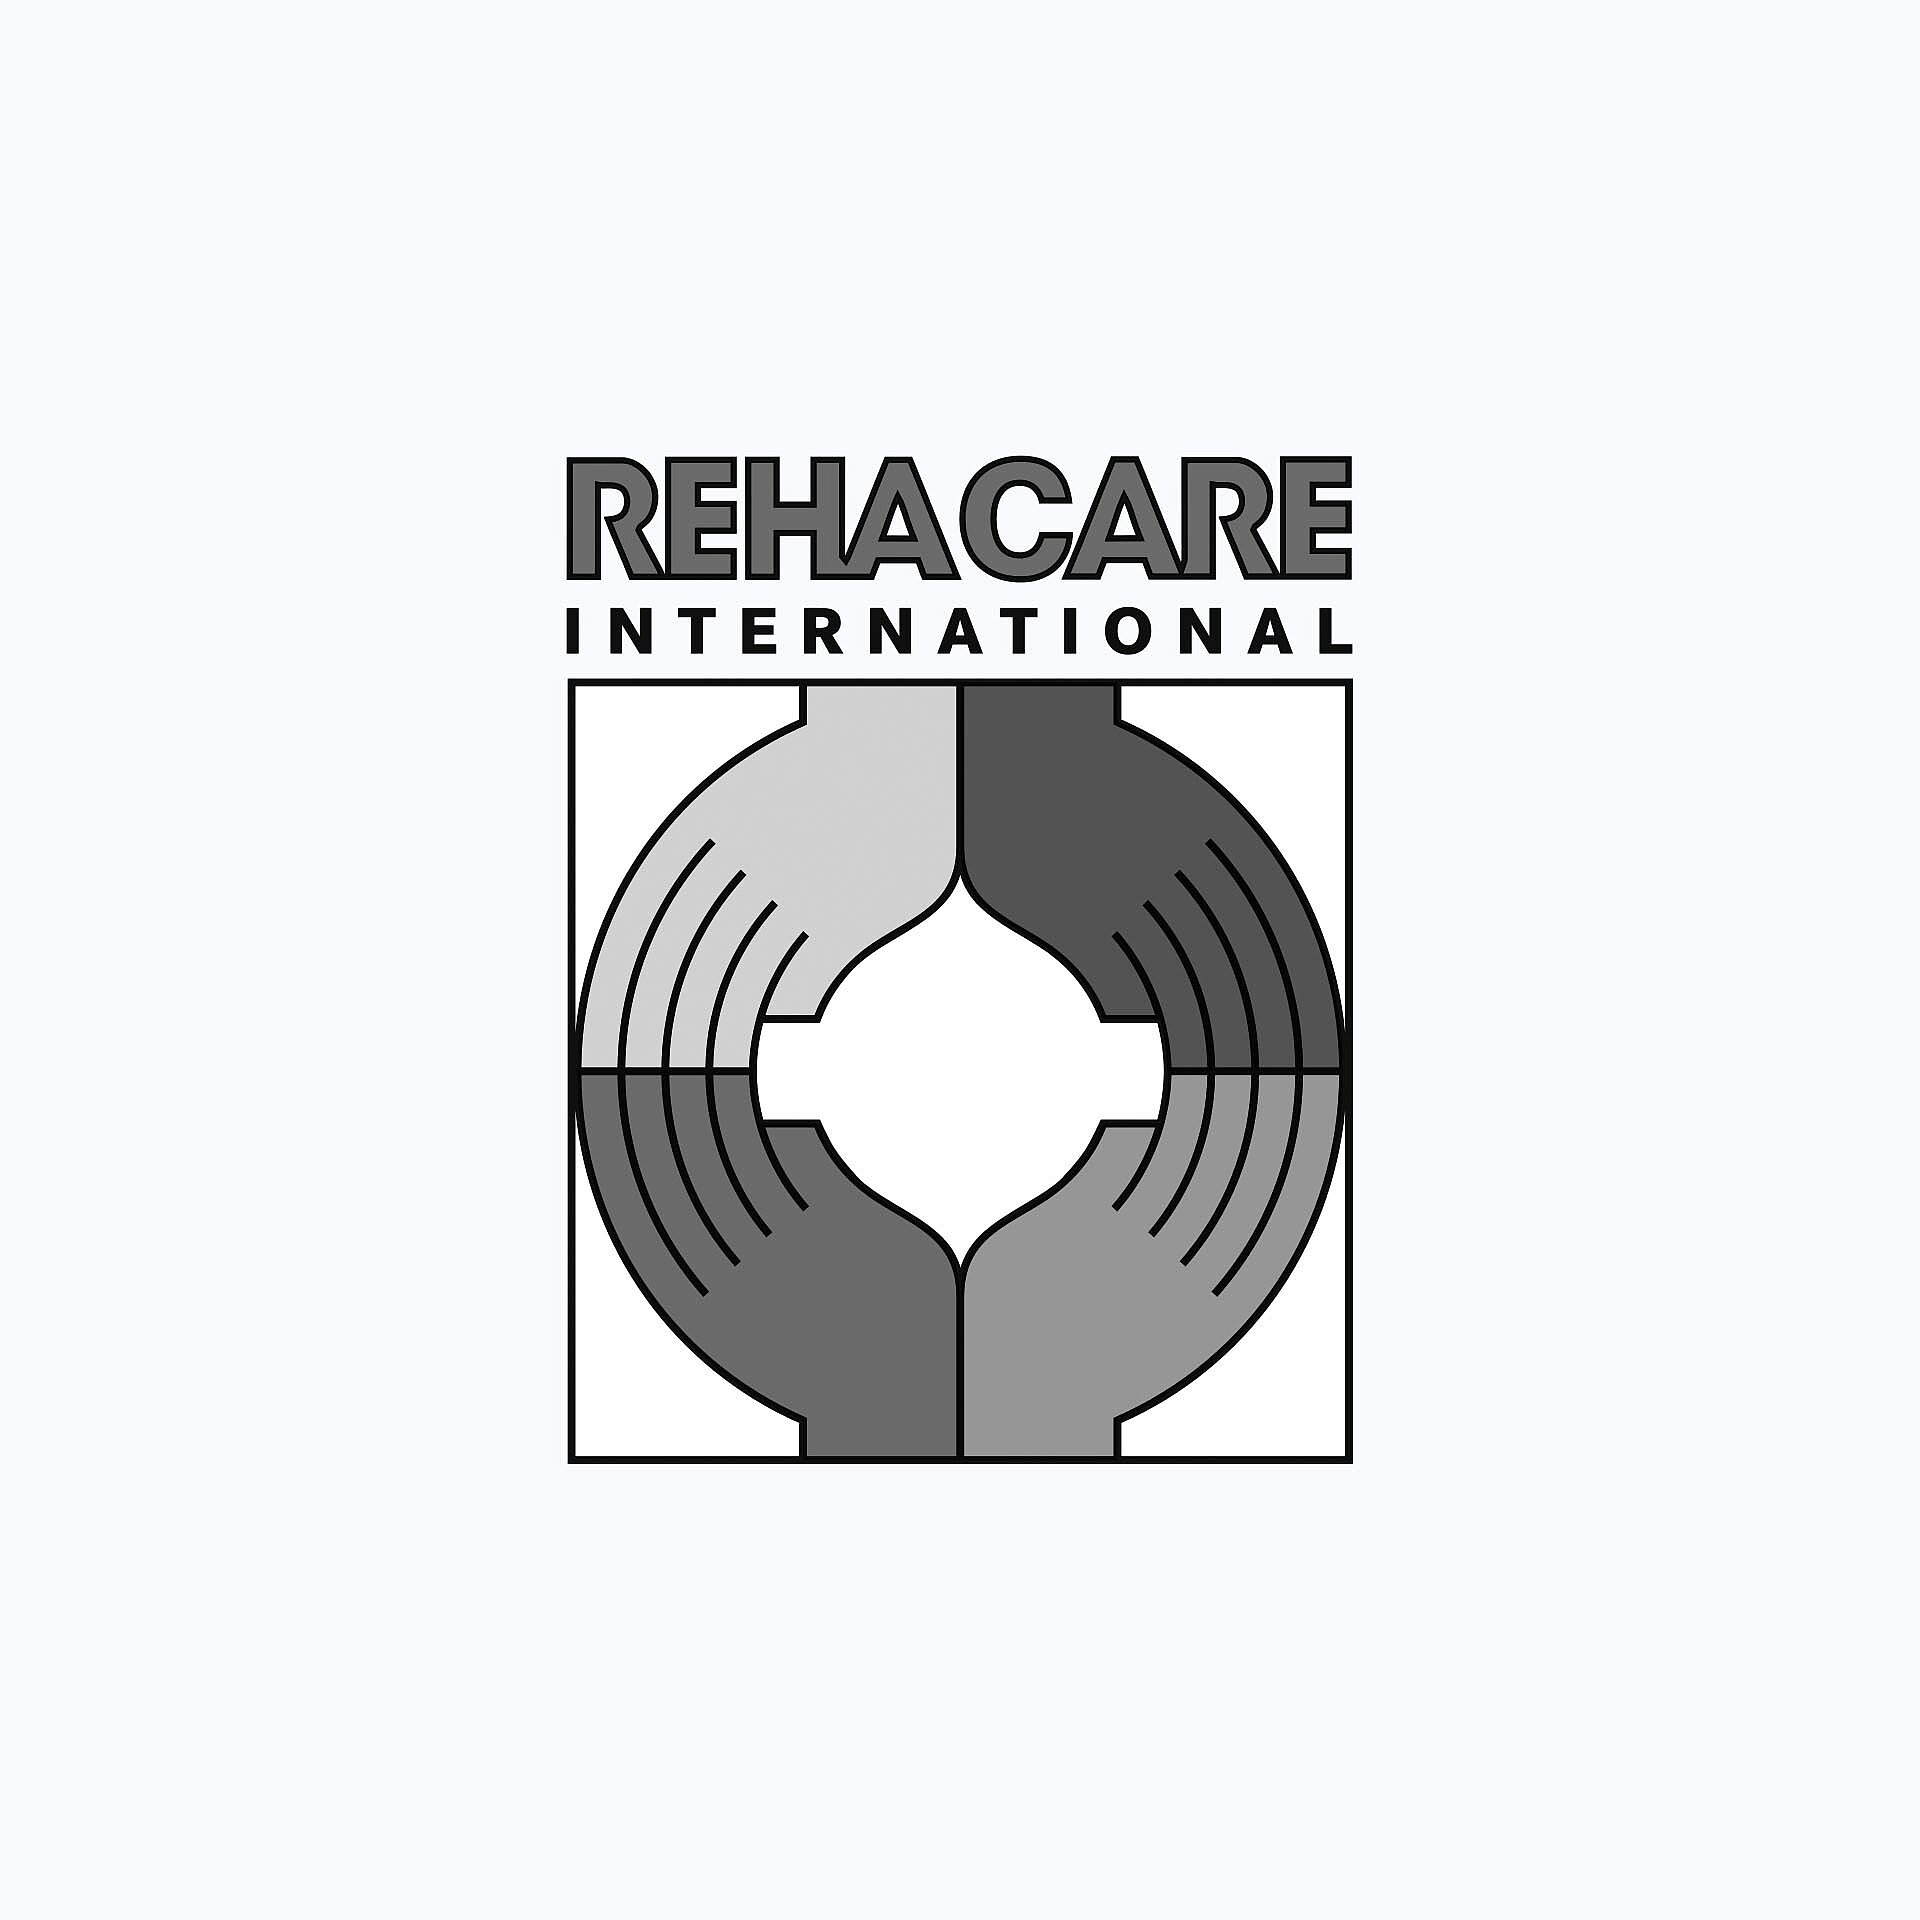 [Translate to Chinese:] rehacare international